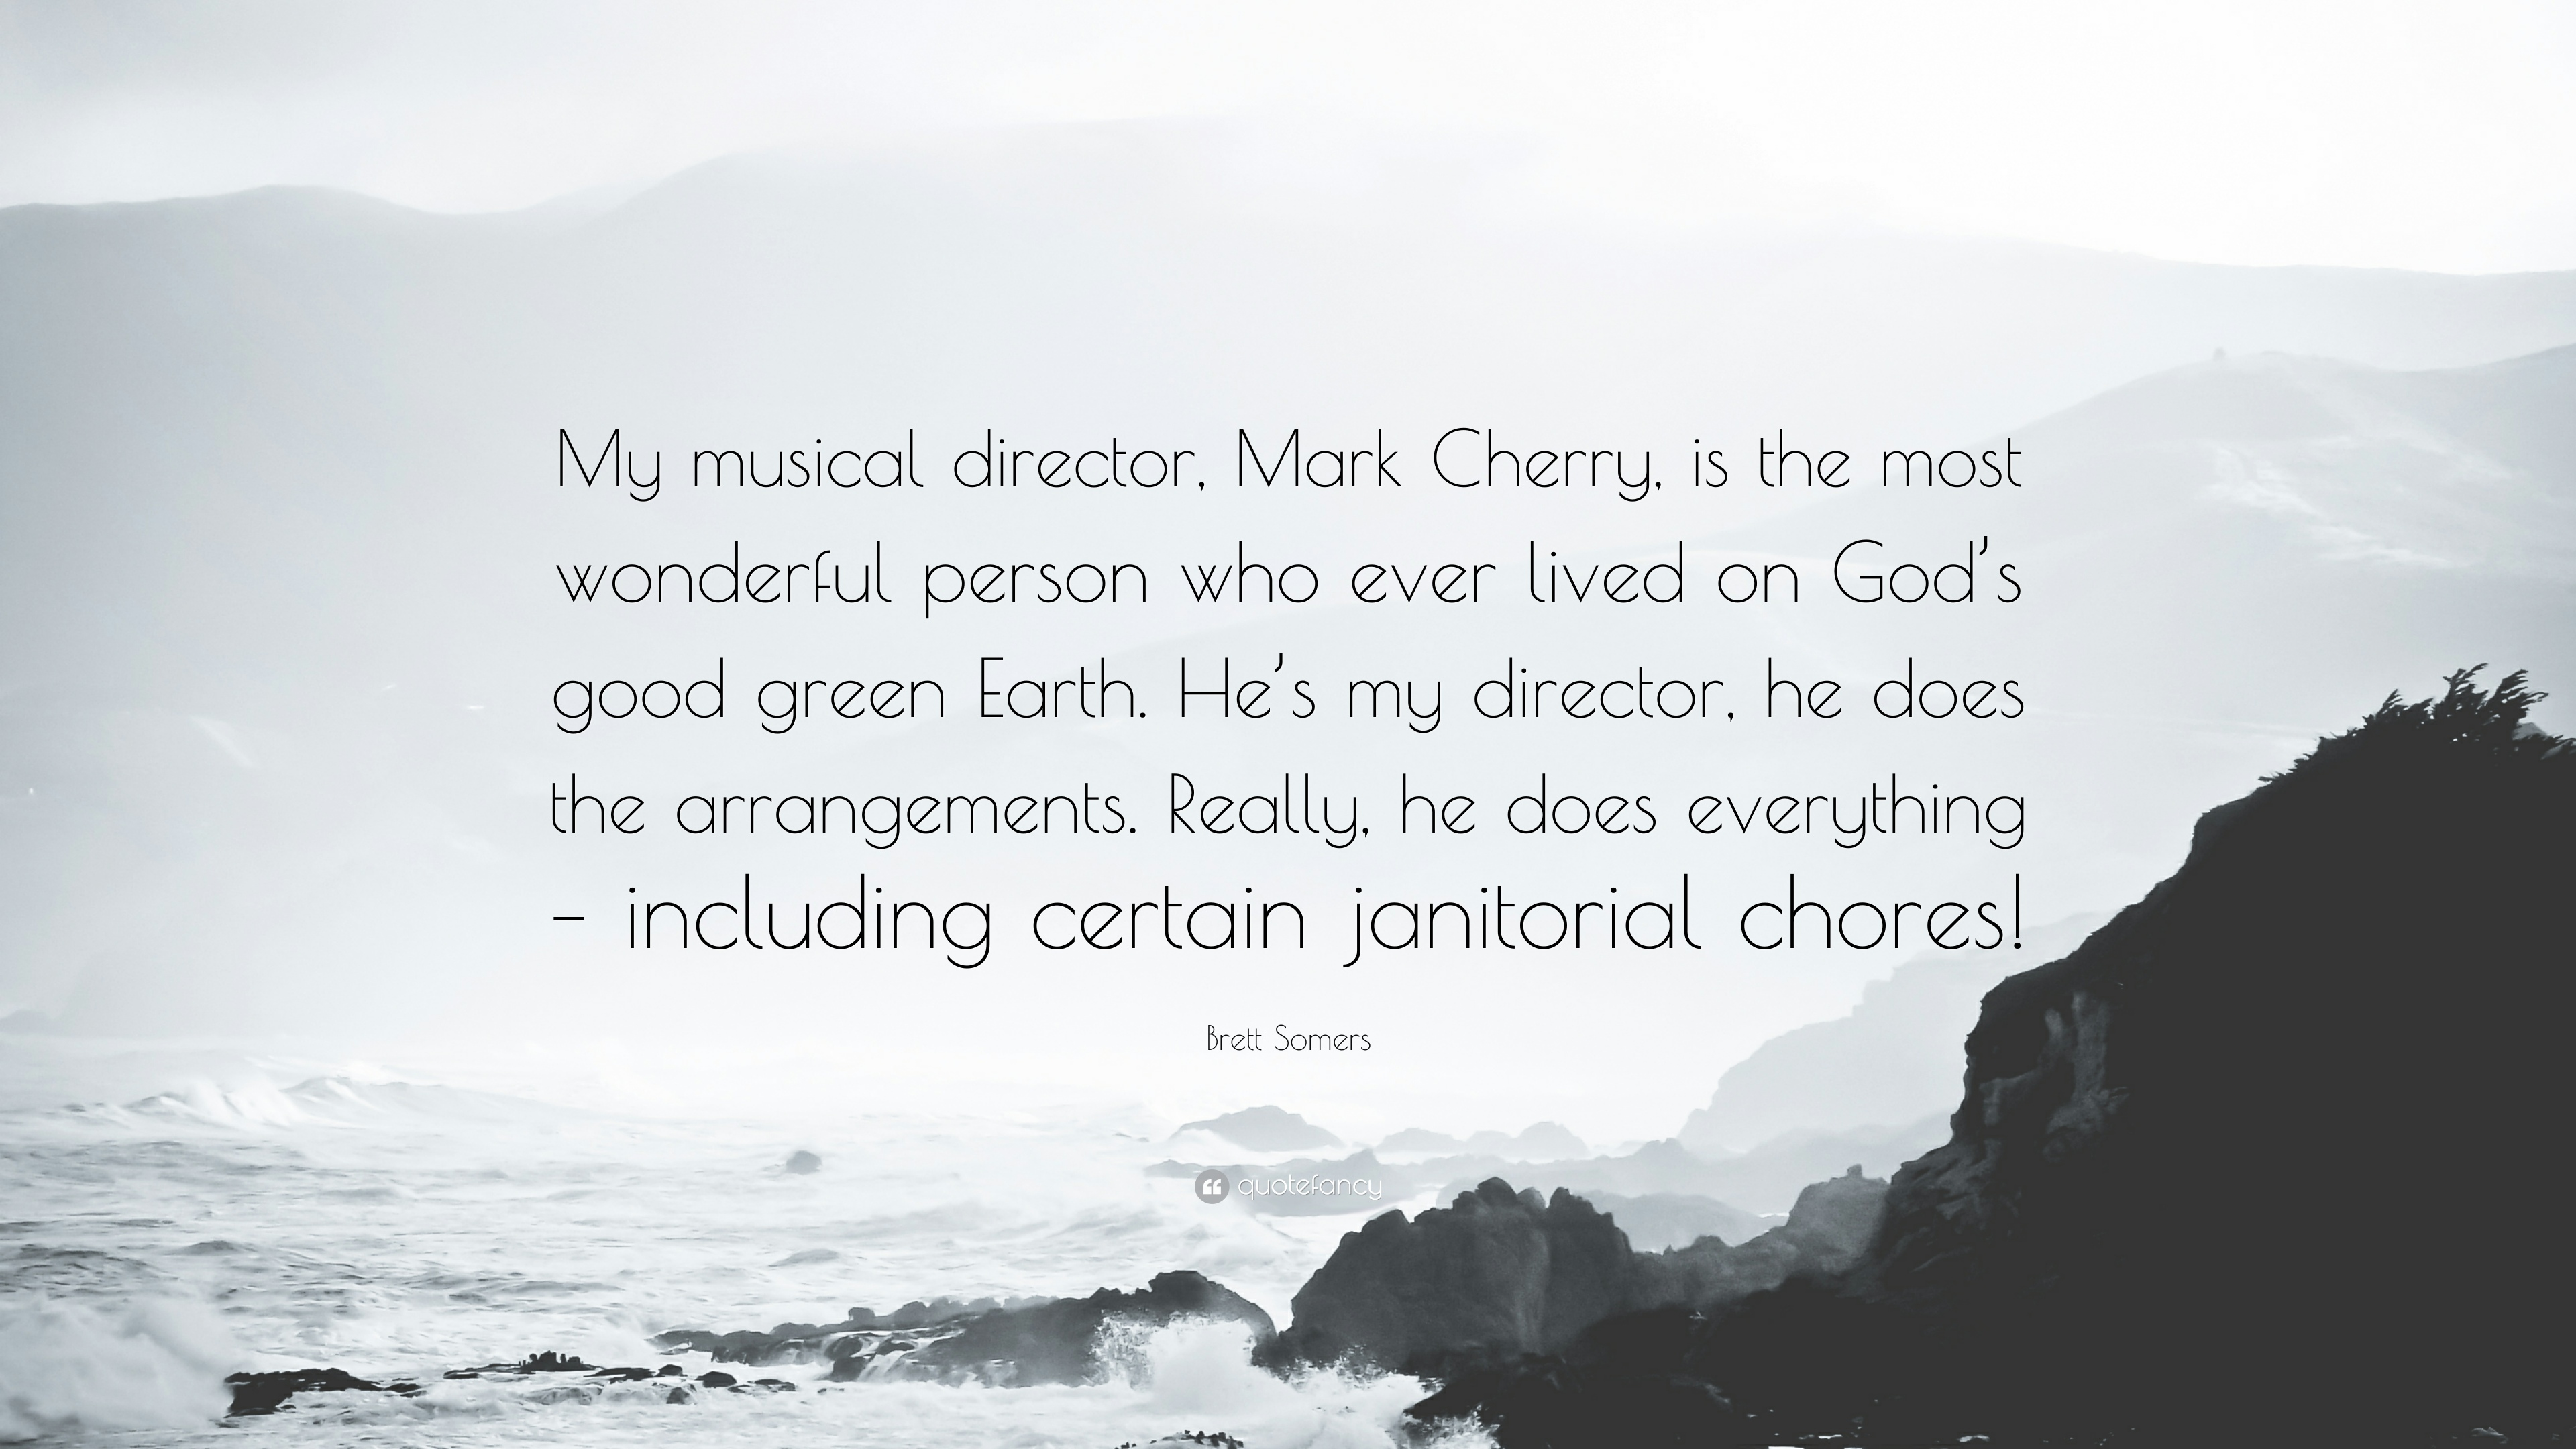 Brett Somers Quote My Musical Director Mark Cherry Is The Most Wonderful Person Who Ever Lived On God S Good Green Earth He S My Directo 7 Wallpapers Quotefancy